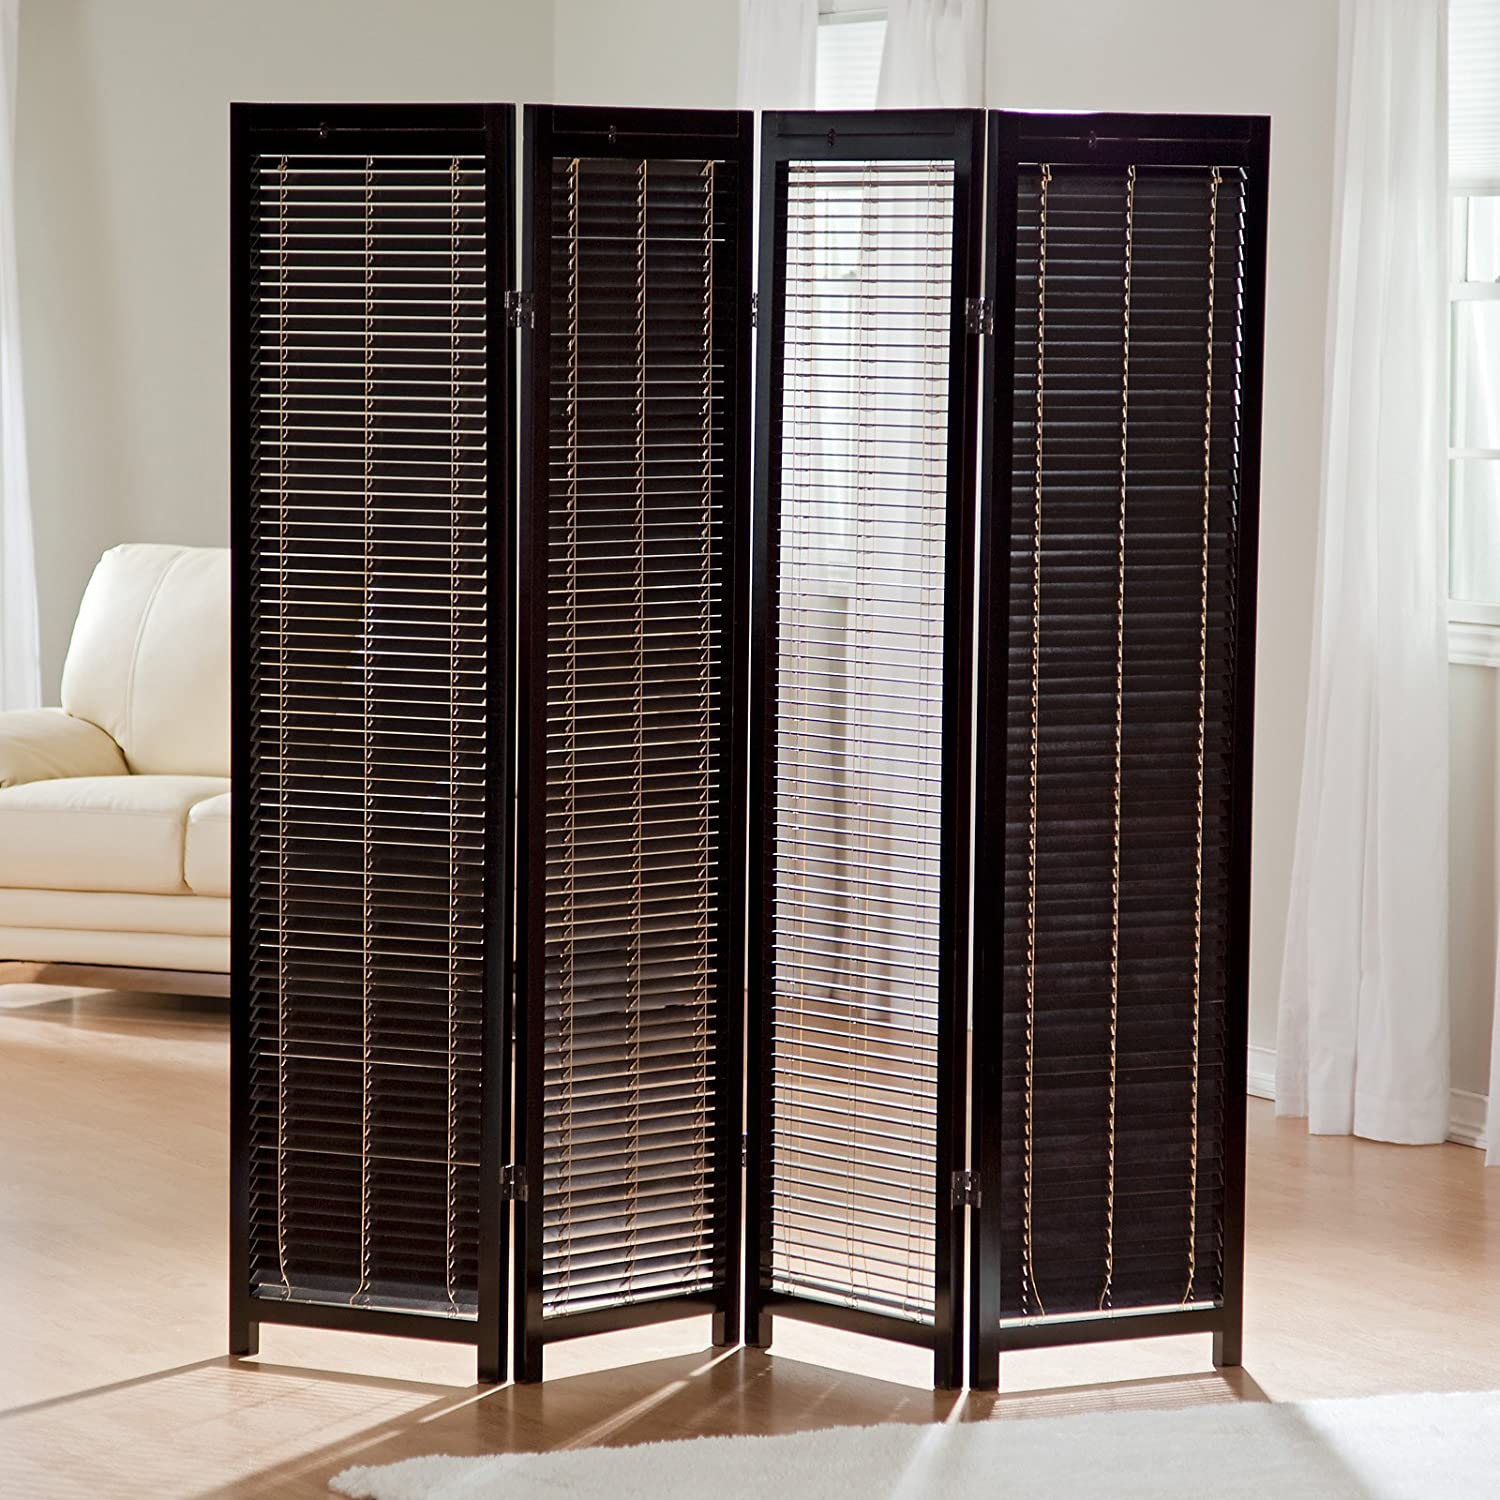 amazoncom tranquility wooden shutter room divider industrial  - amazoncom tranquility wooden shutter room divider industrial  scientific